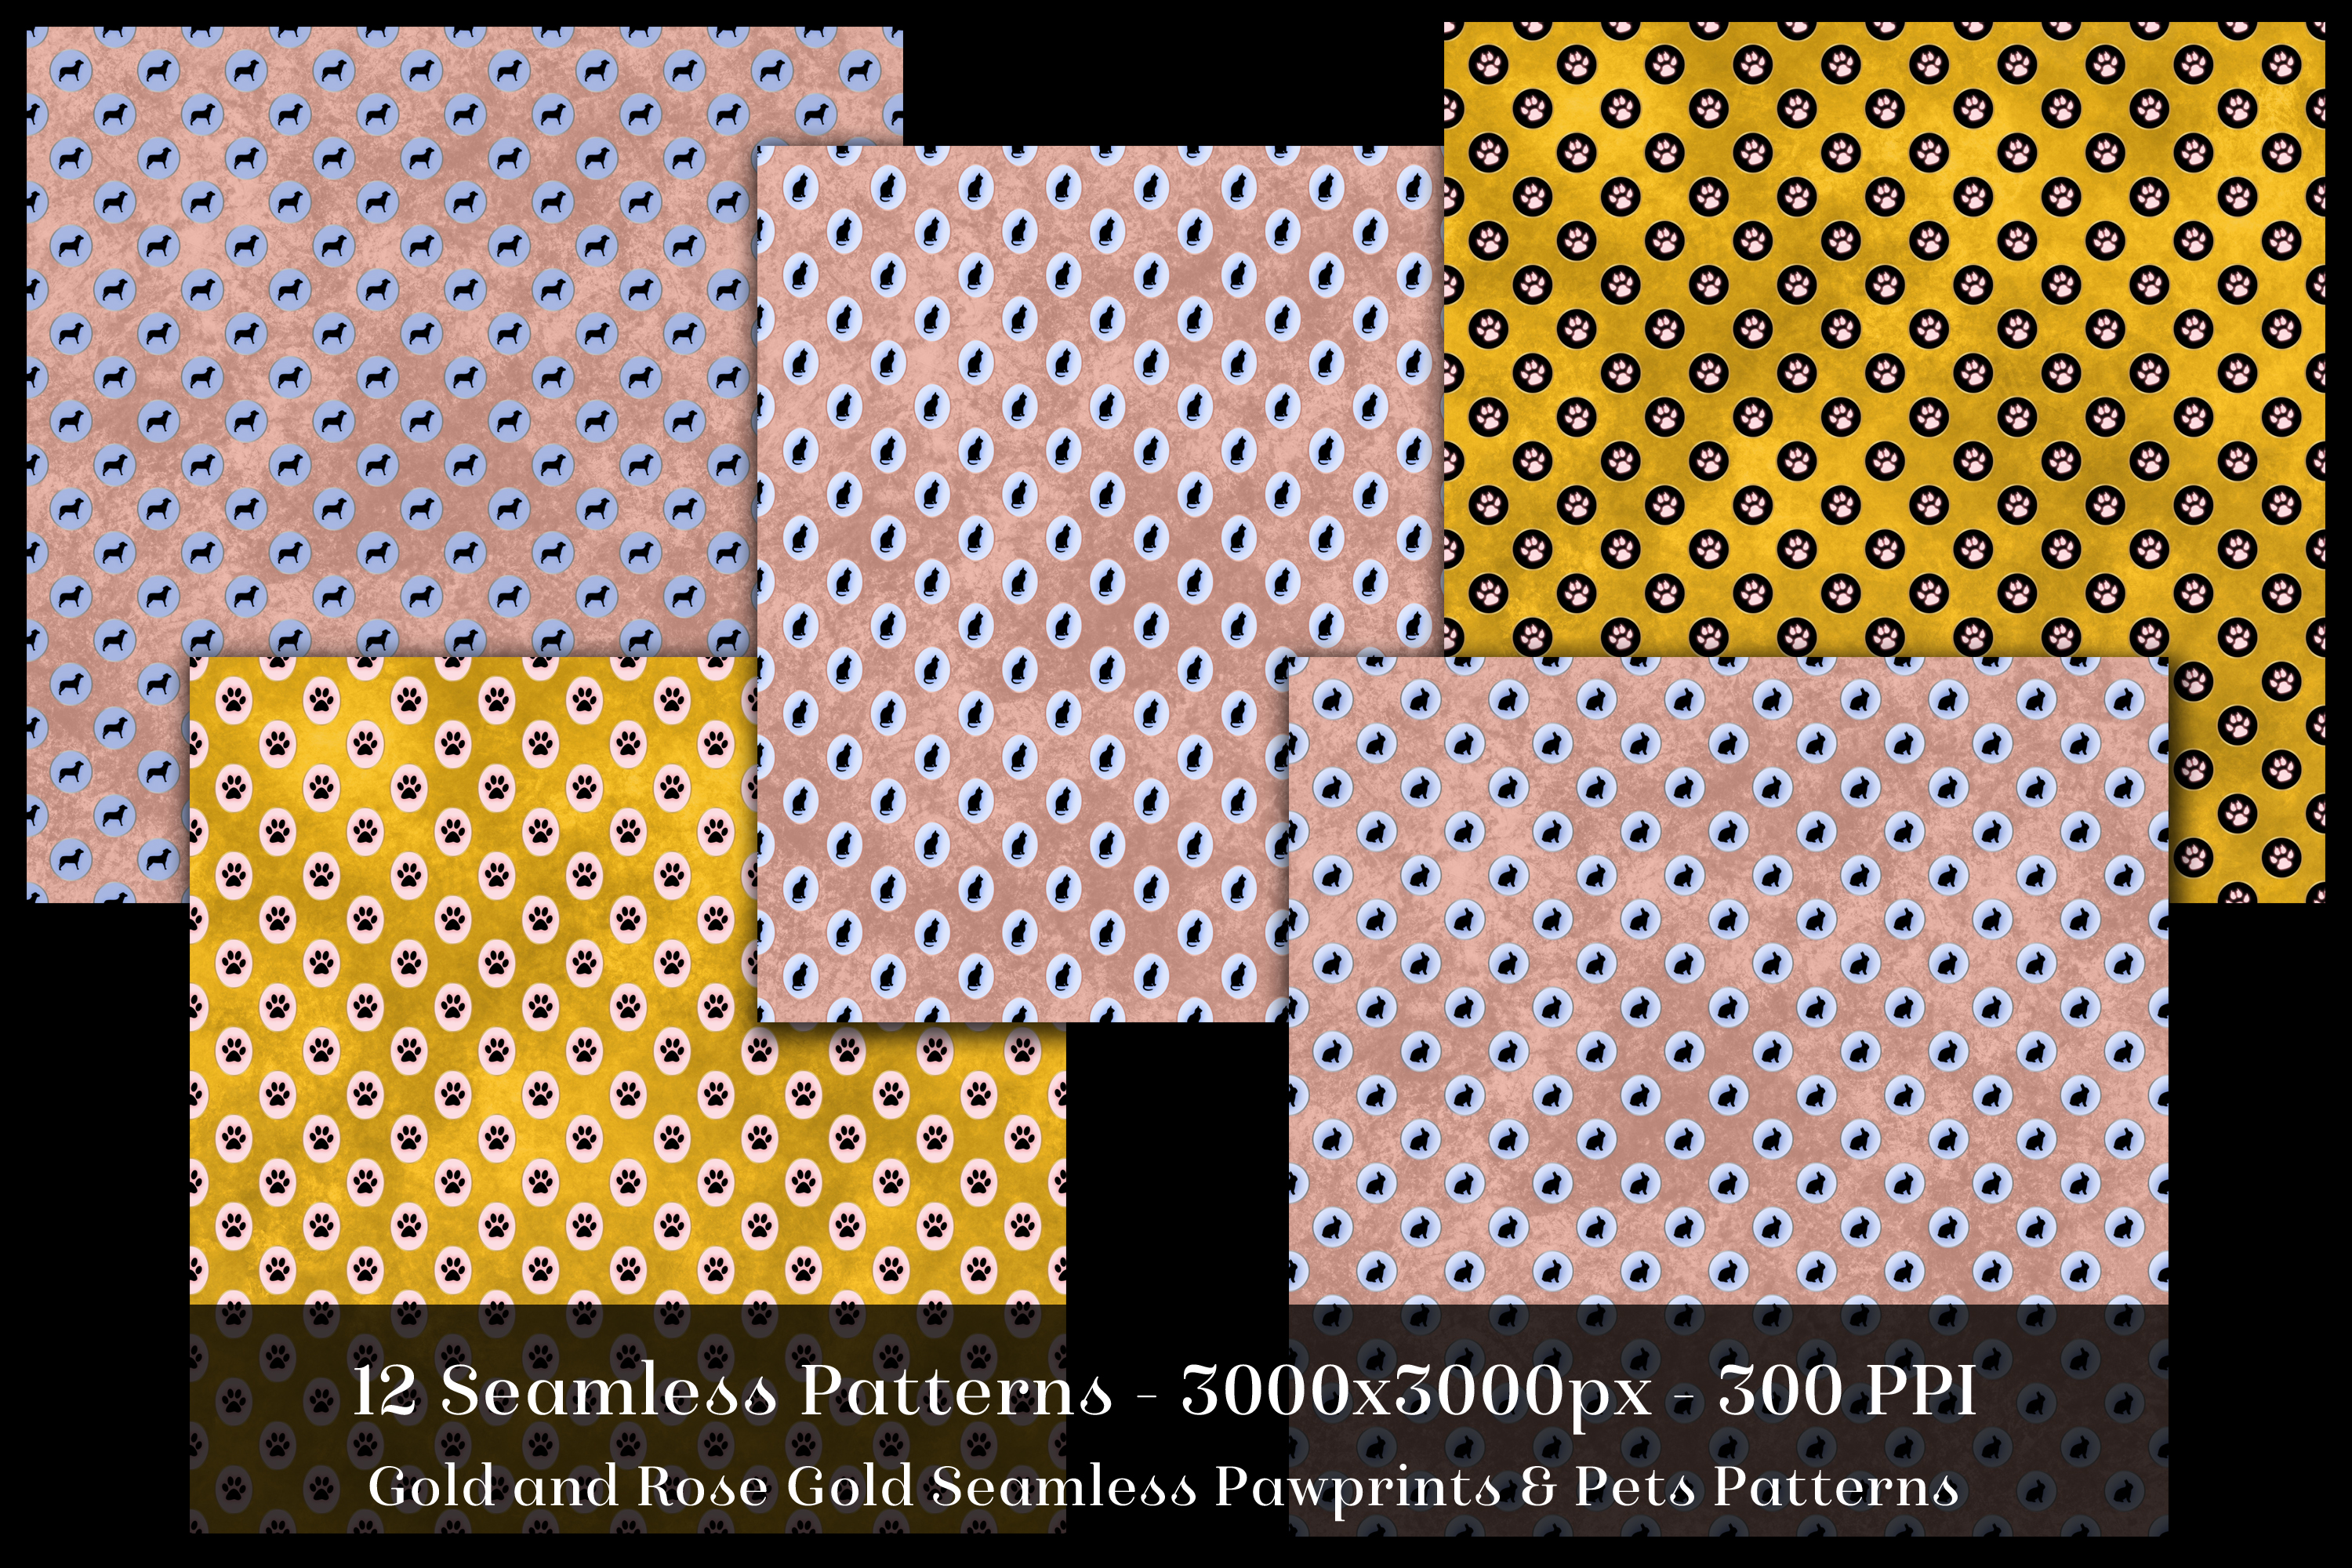 Gold & Rose Gold Seamless Pawprints & Pets Patterns example image 2